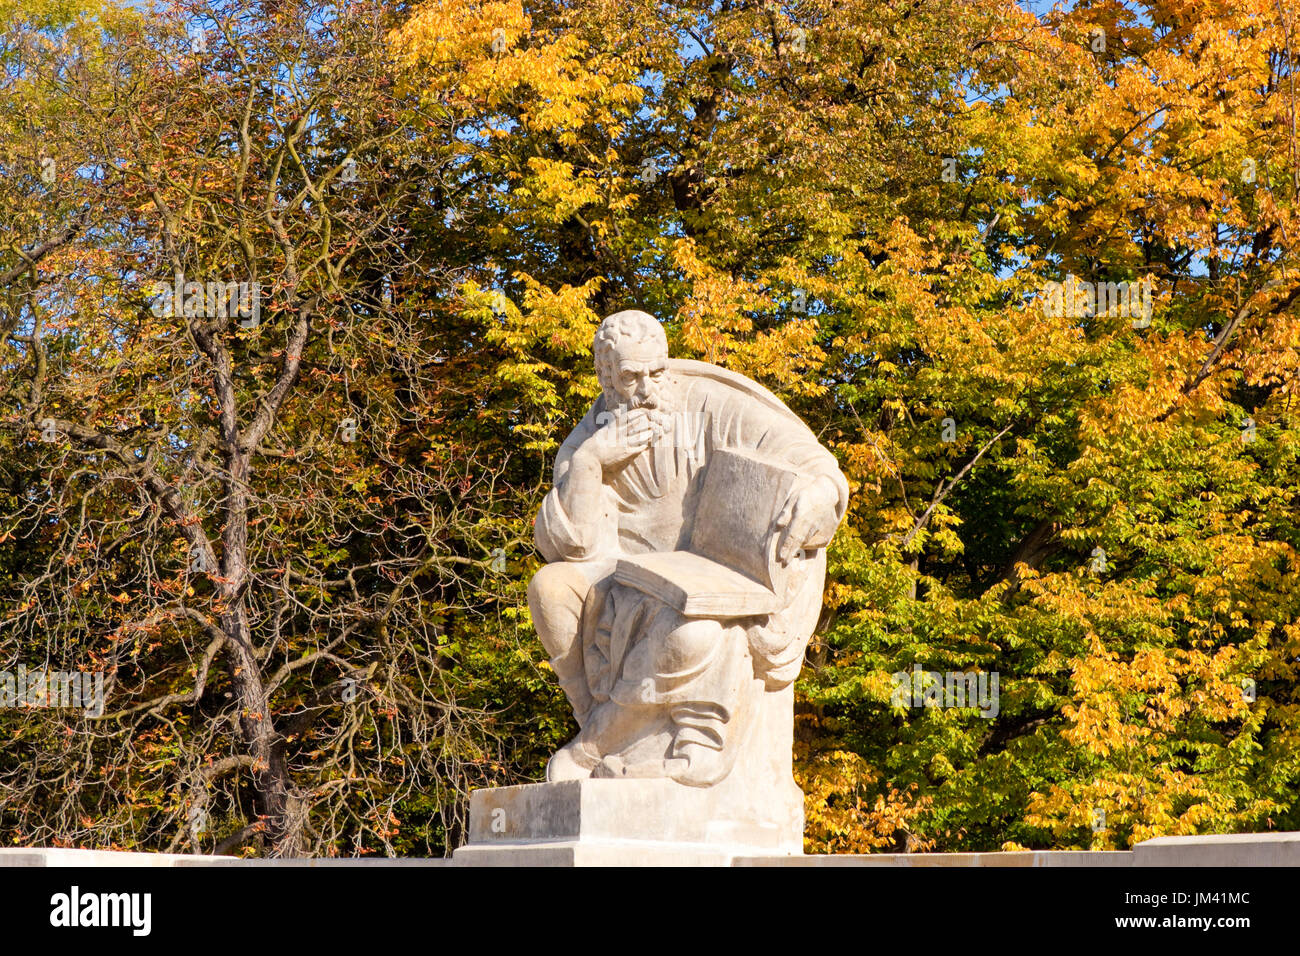 Statue of Aristophanes in The Amphitheatre on the Island in Lazienki park (Royal Baths park), Warsaw, Poland - Stock Image